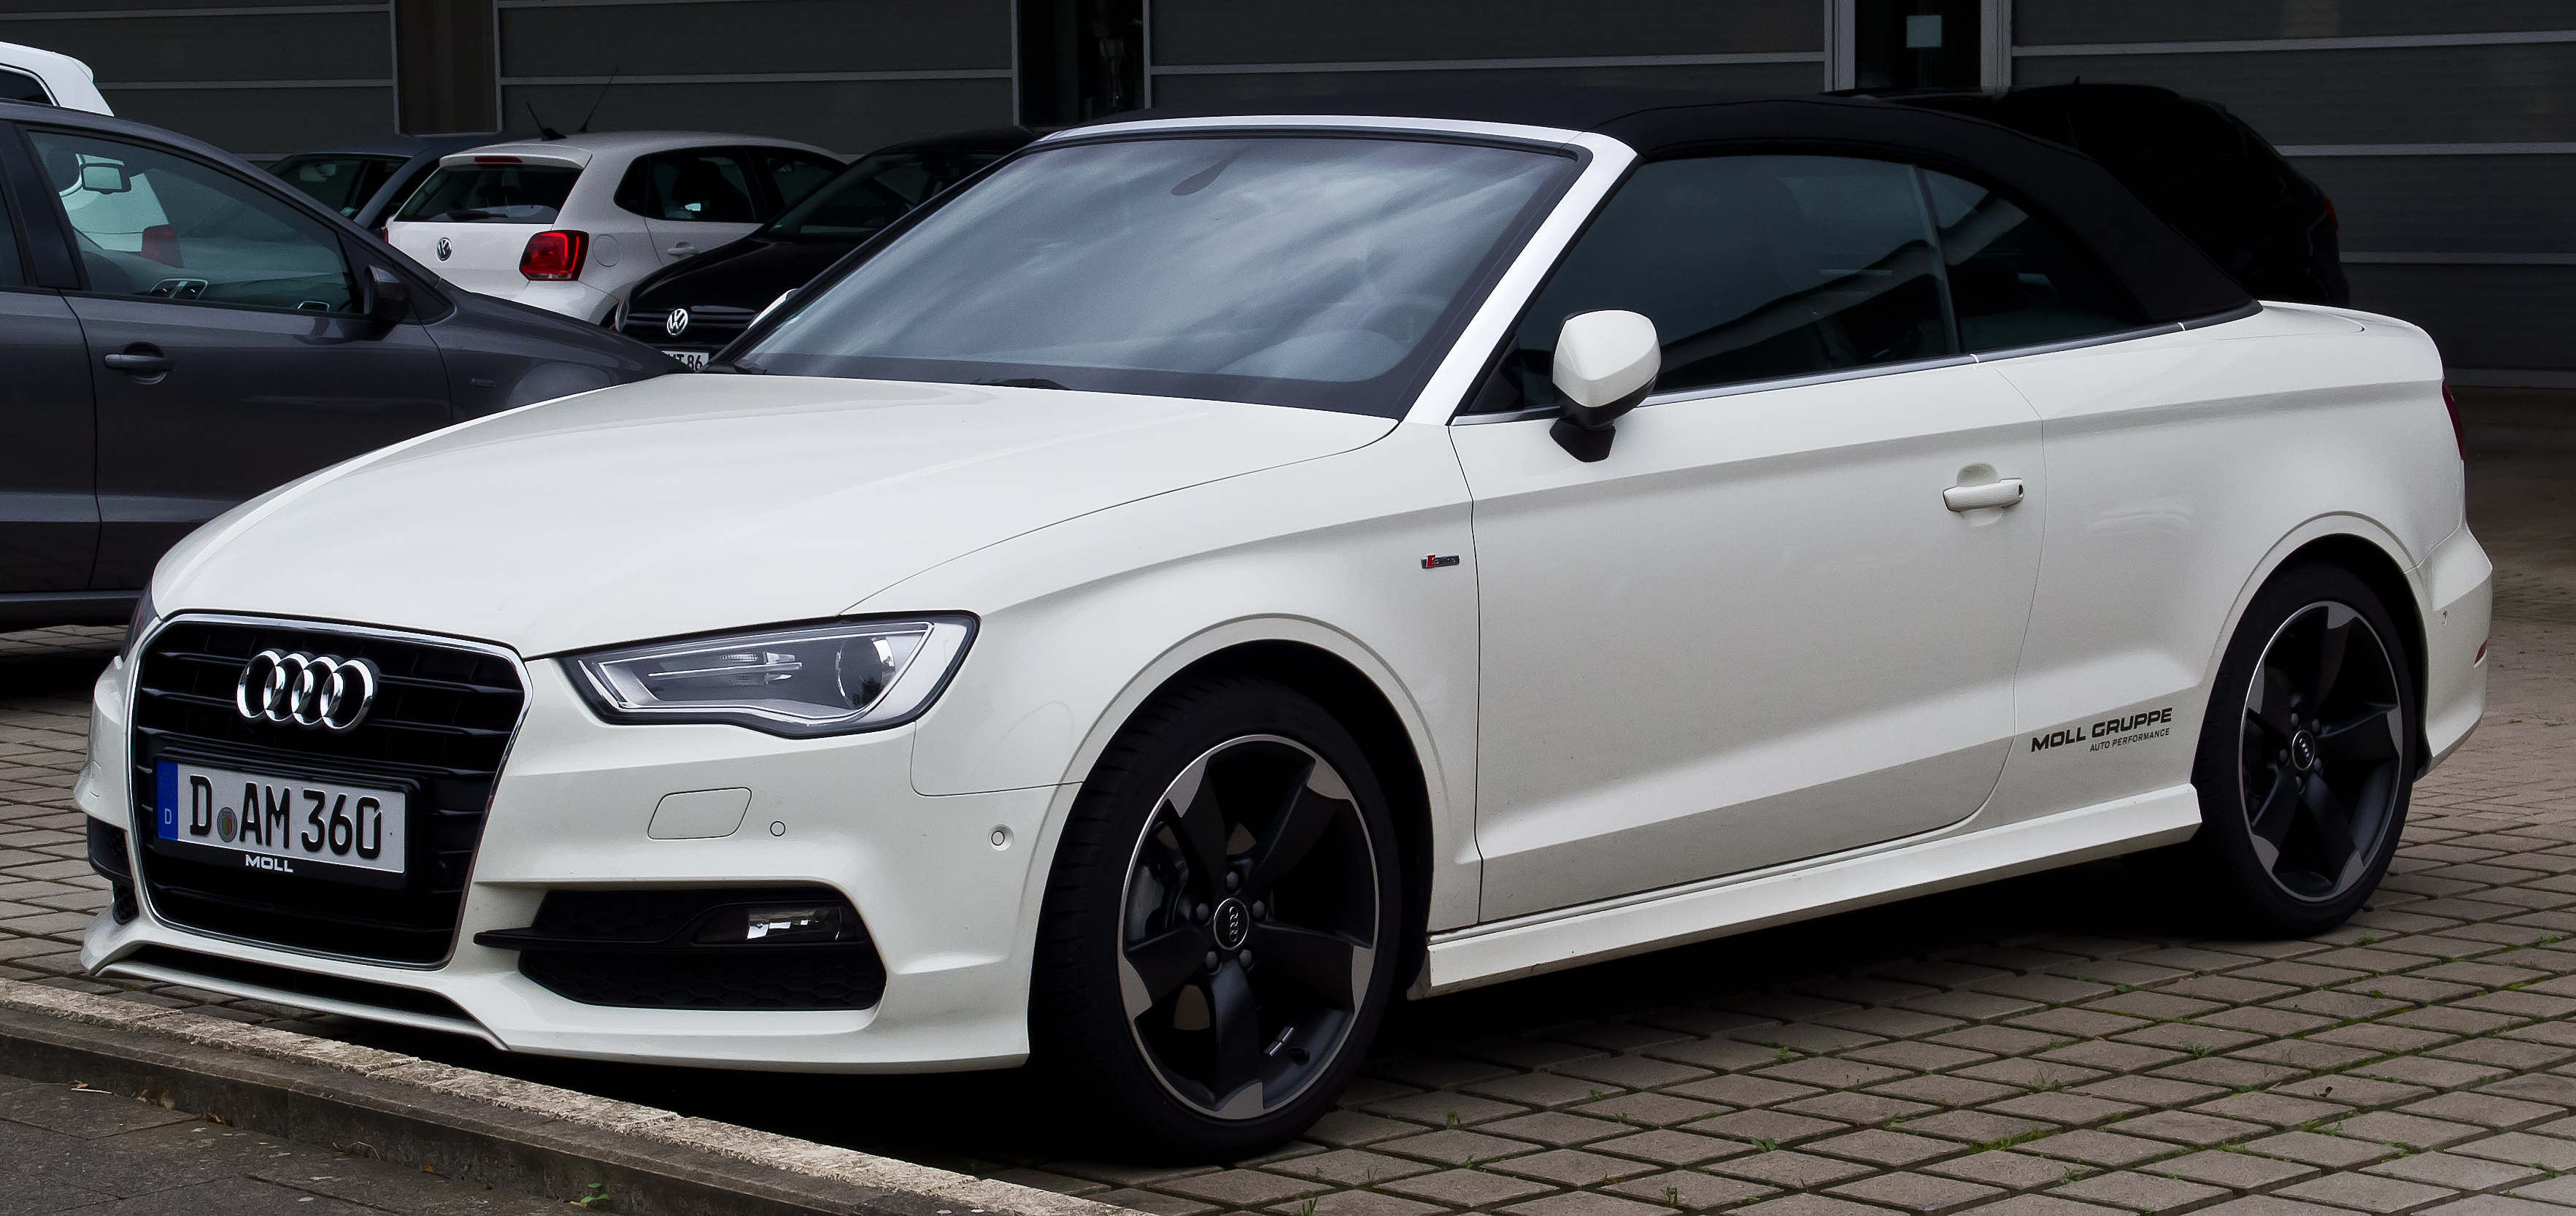 Pictures of audi a3 cabrio (8v) 2015